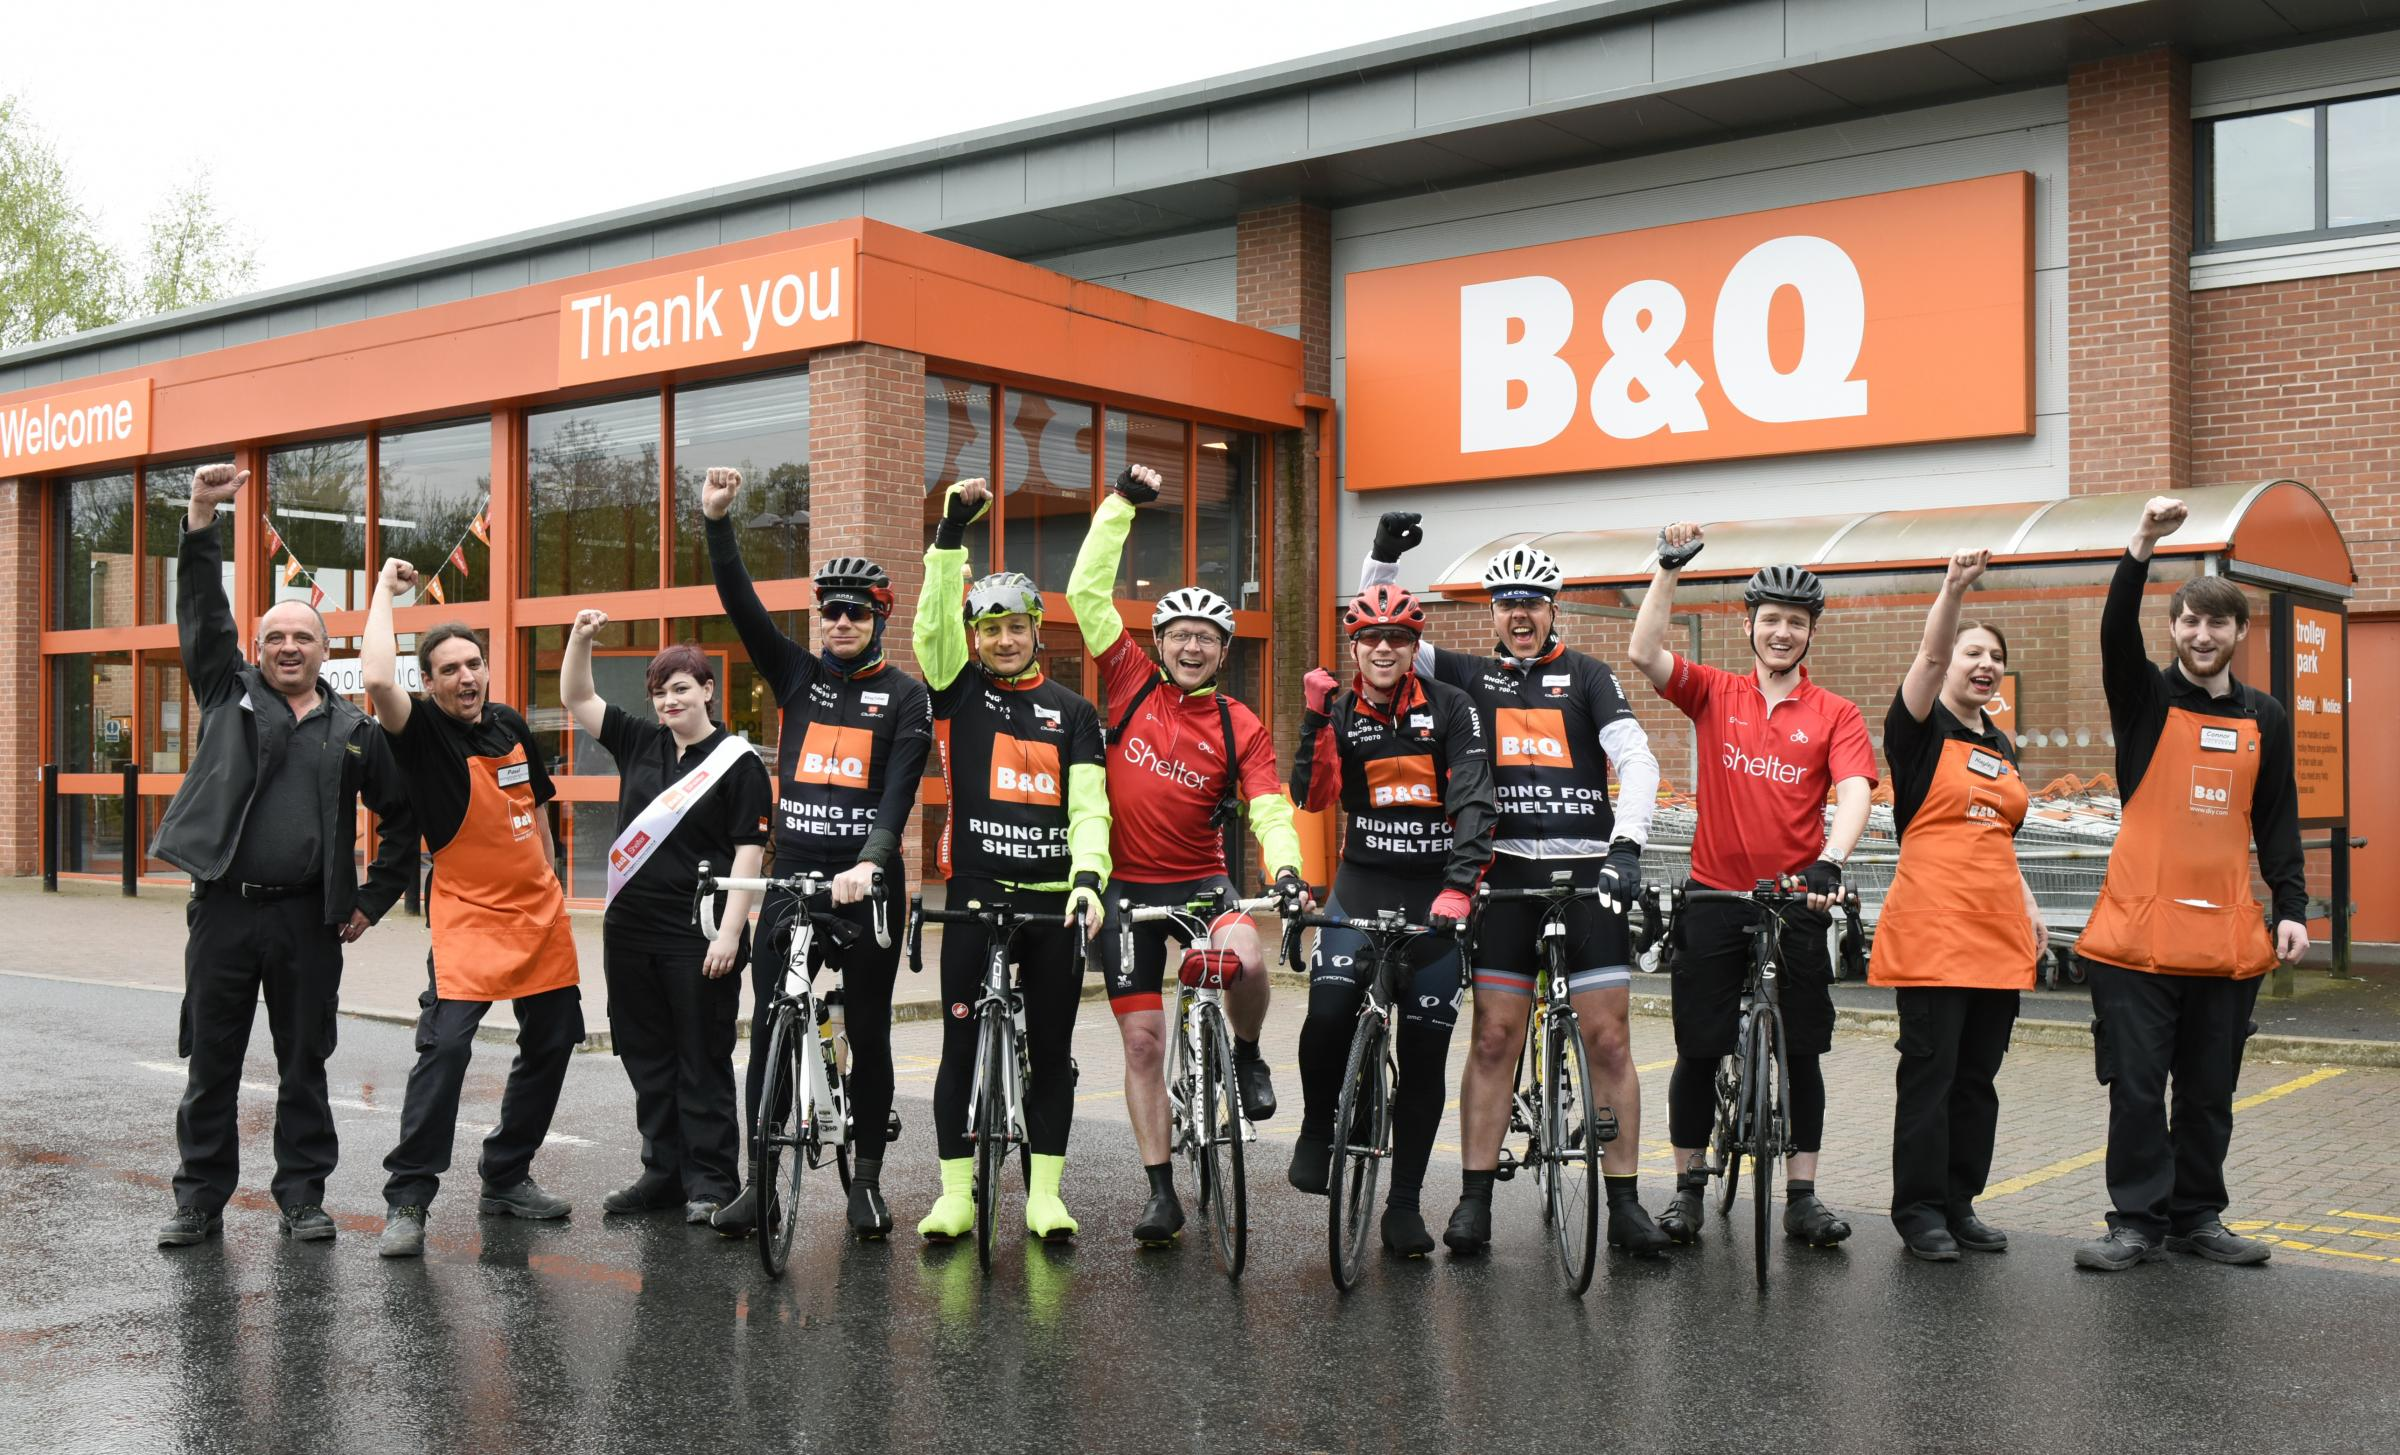 B&Q employees, at B&Q Leominster on the Tour de B&Q, raising funds for housing and homelessness charity Shelter.